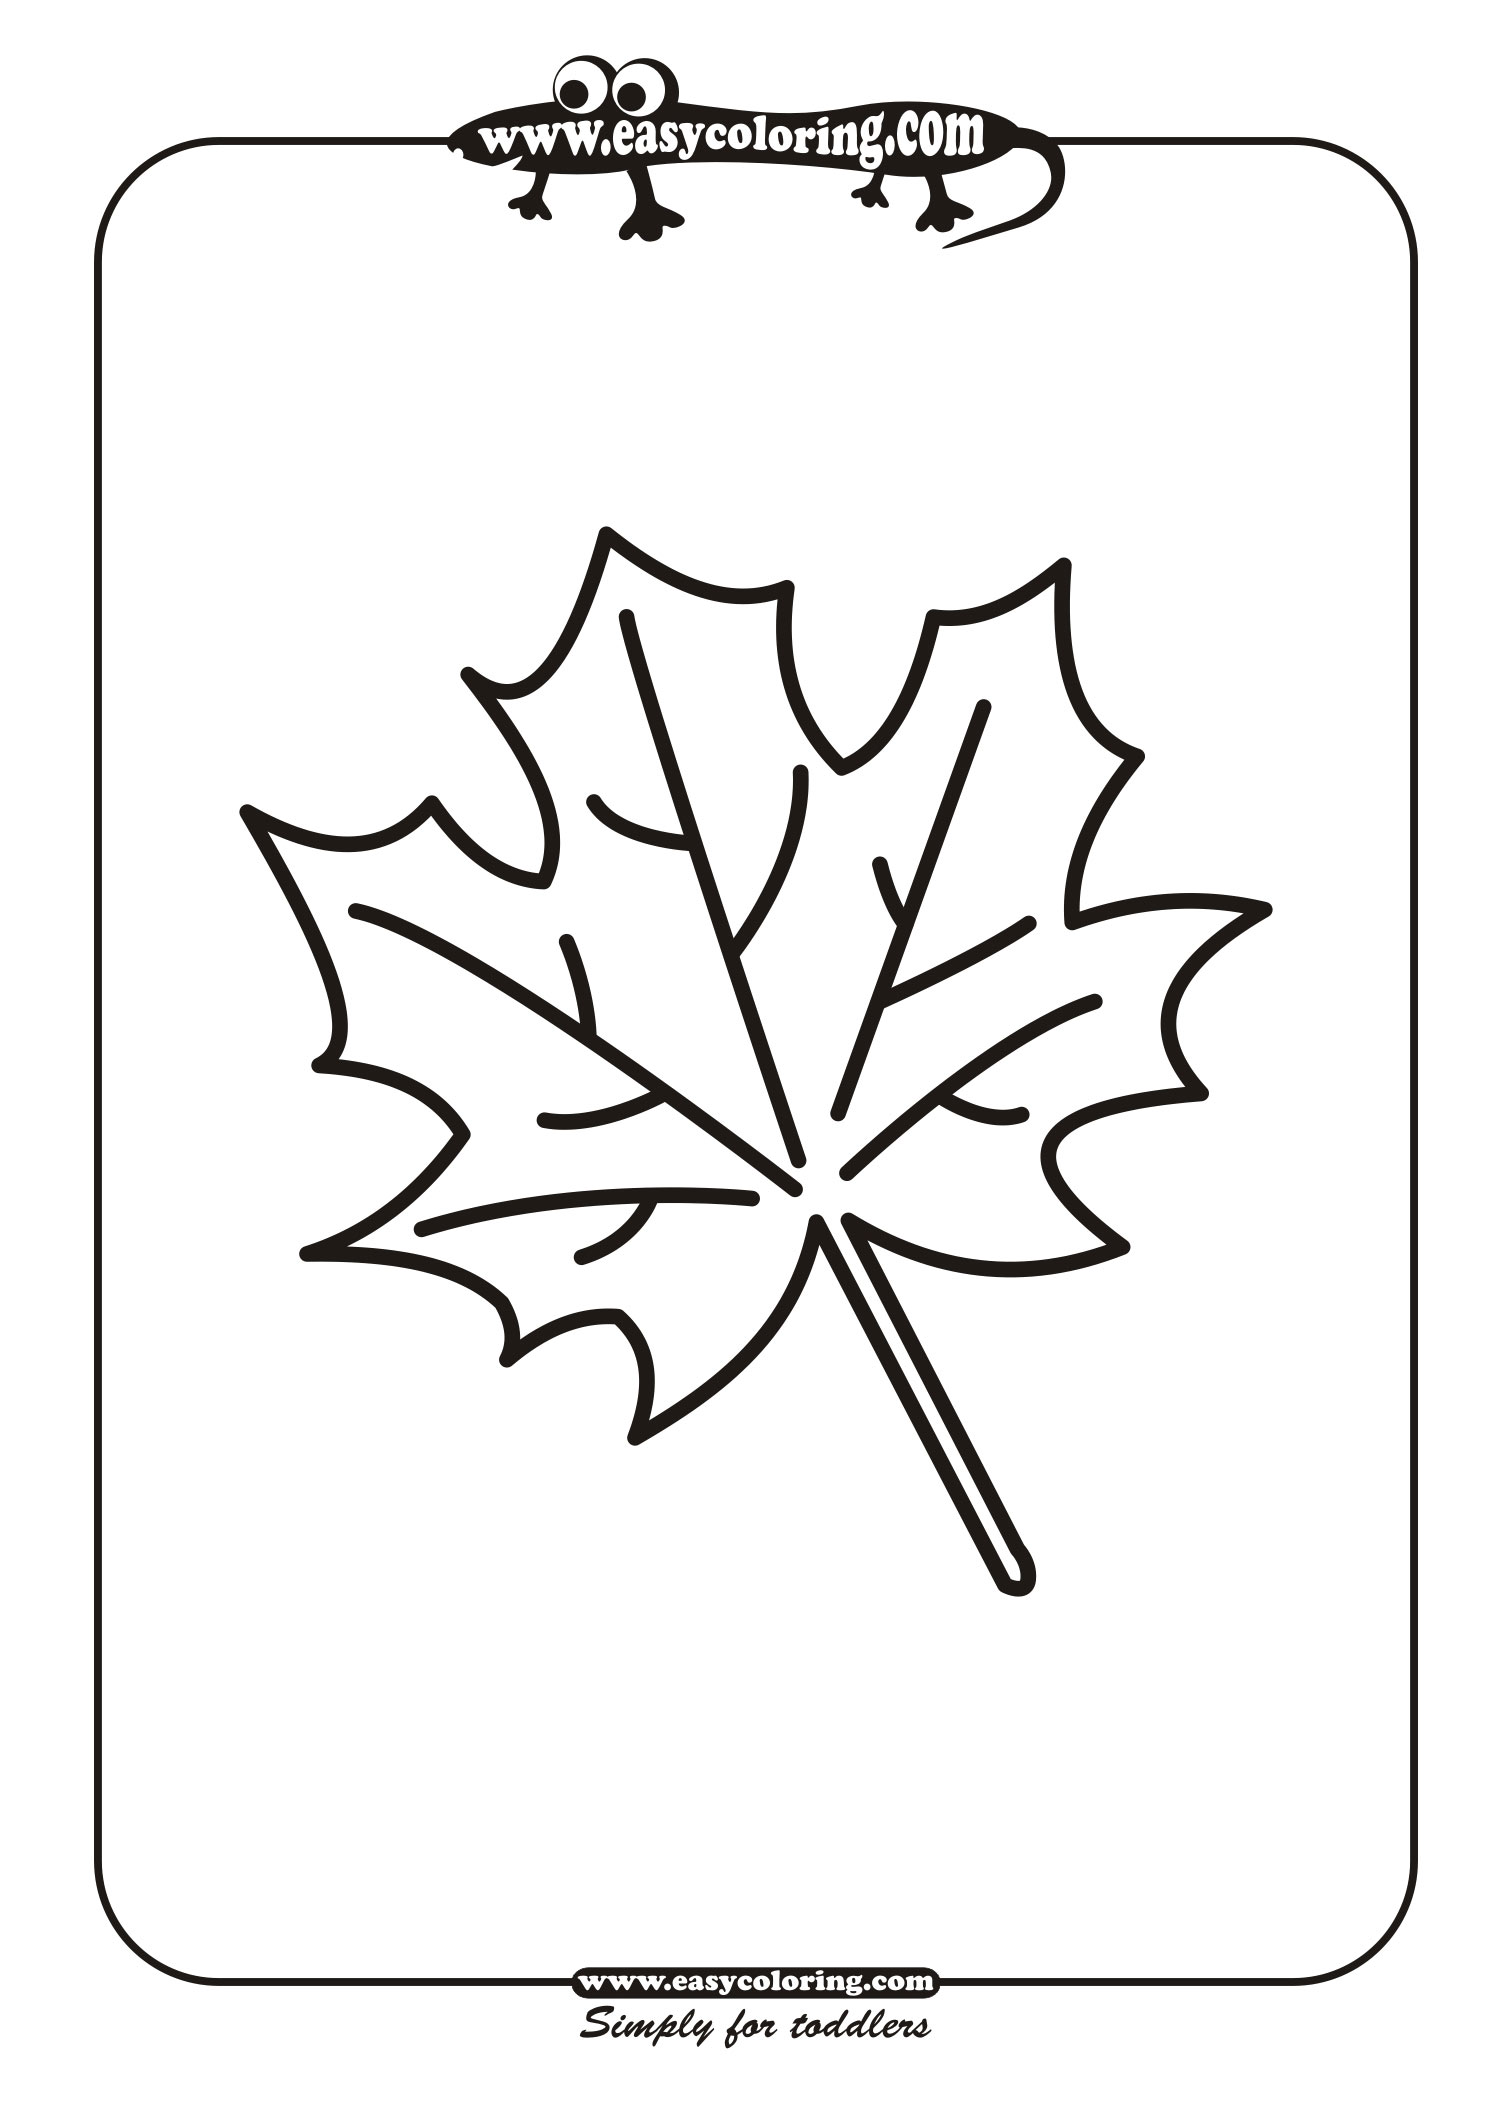 Leaf Six Simple leafs Easy coloring pages for toddlers